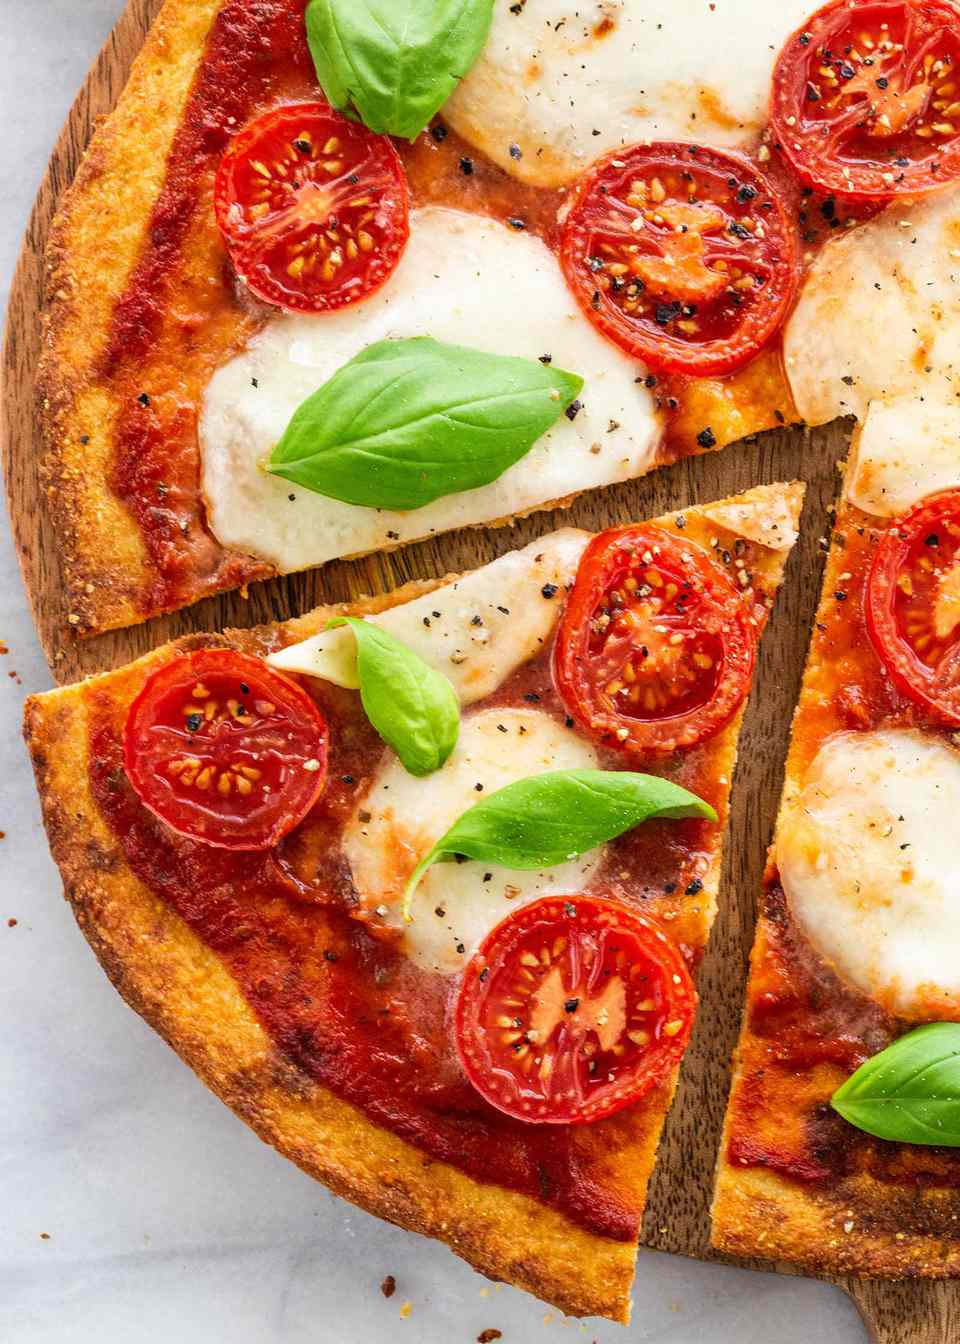 How to Make Pizza with Cauliflower Crust